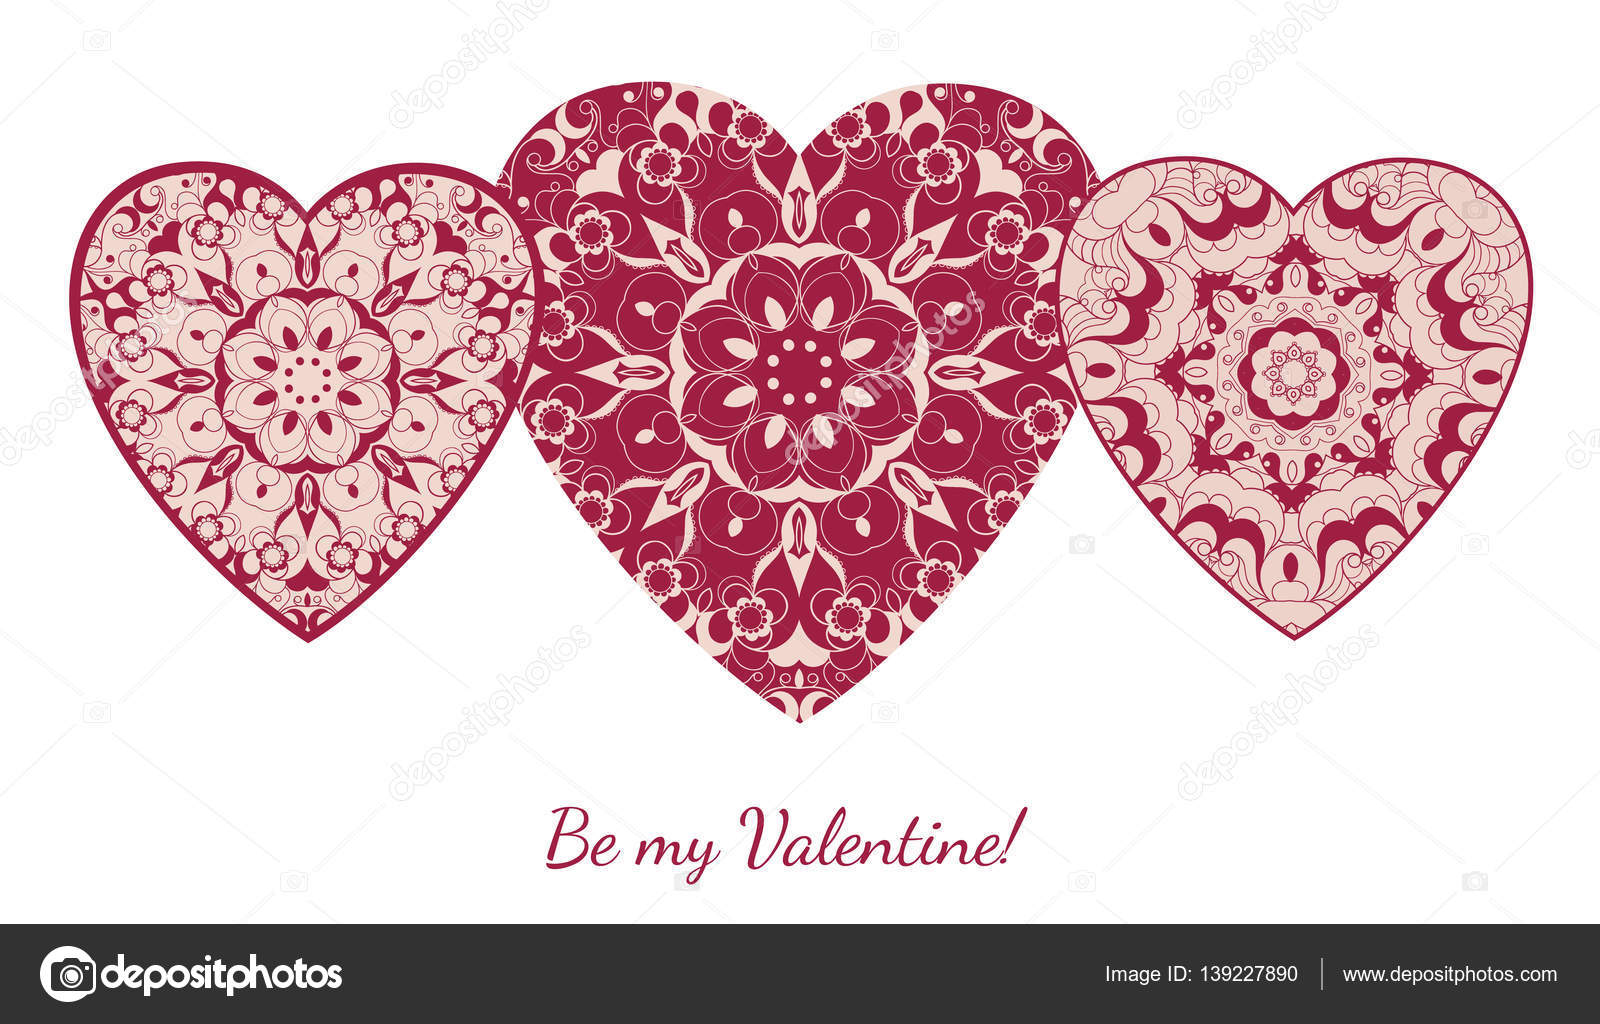 Decorative Valentine Greeting Card With Floral Ornate Hearts Vector